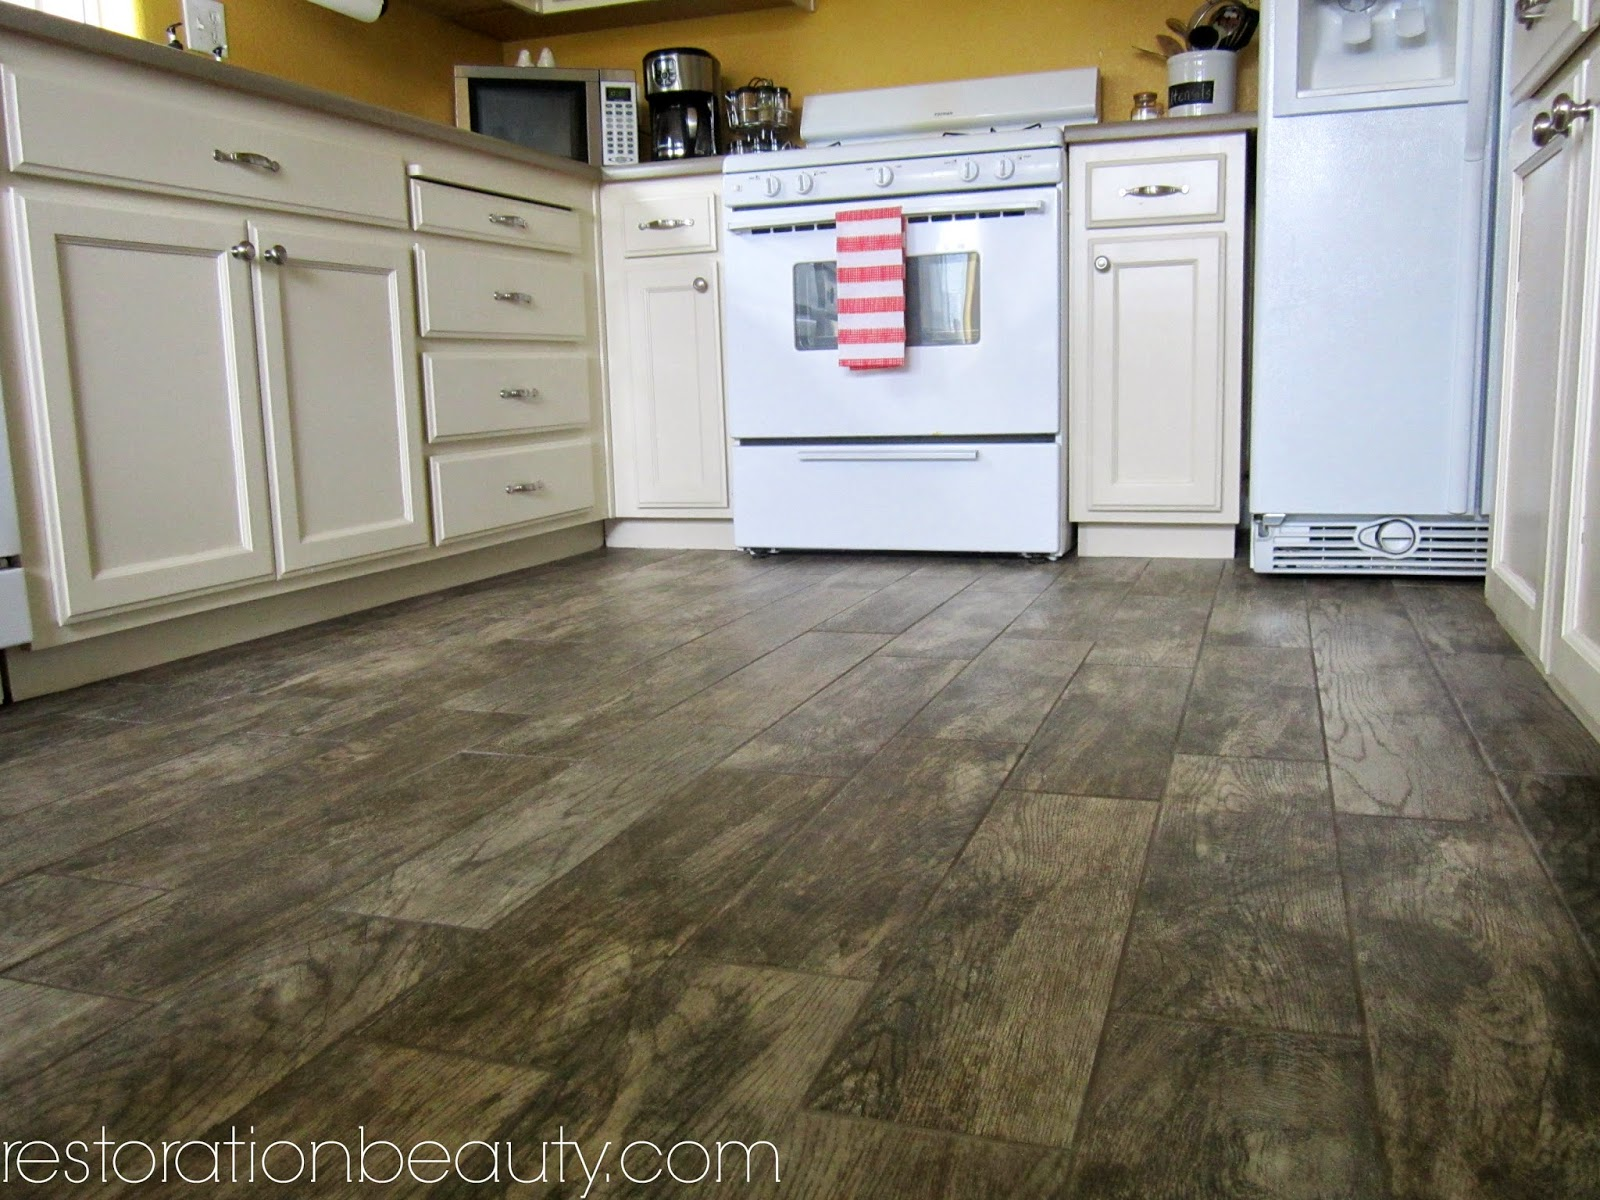 rustic wood floor tile.  Restoration Beauty Faux Wood Tile Flooring In The Kitchen